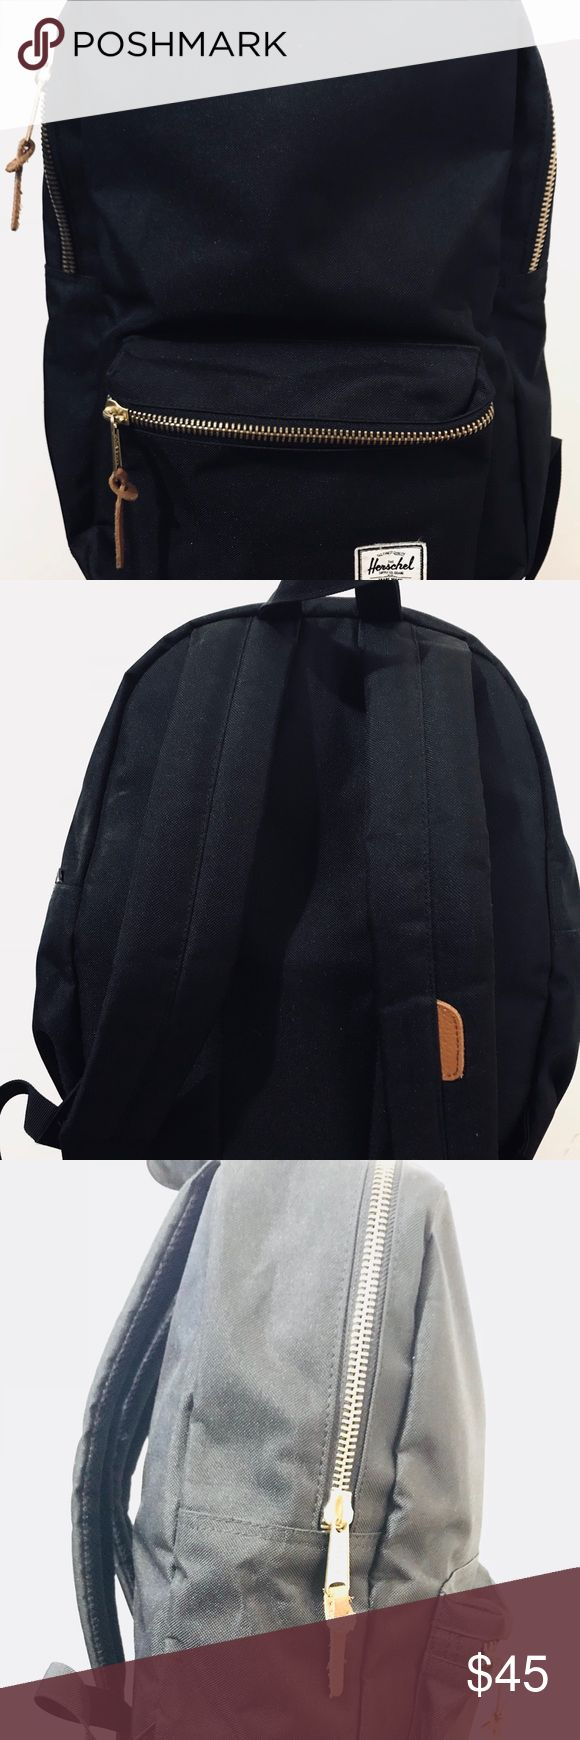 """Herschel backpack Herschel Settlement Backpack: Mid-Volume  Has 13"""" laptop sleeve, exposed zippers with pebbles leather pulls. Front storage pocket with key clip and its classic woven label.   Original price: $59.99 Bags Backpacks"""